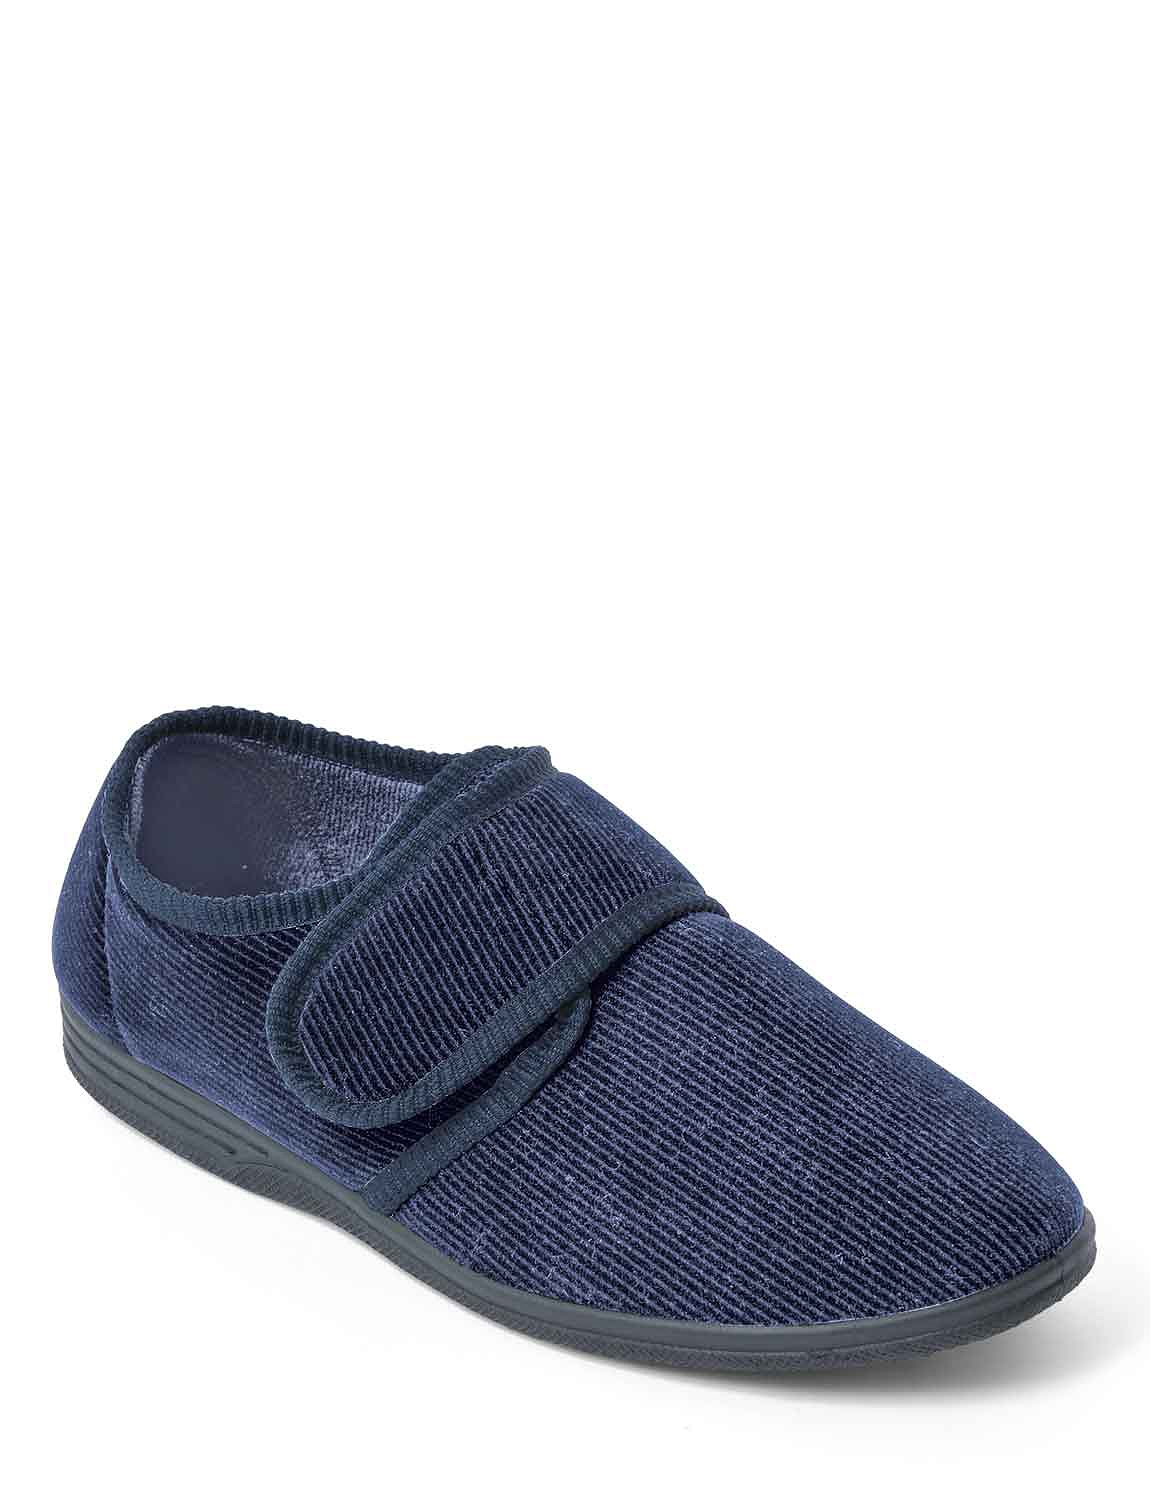 Touch Fasten Wide Fit Washable Slipper - Navy